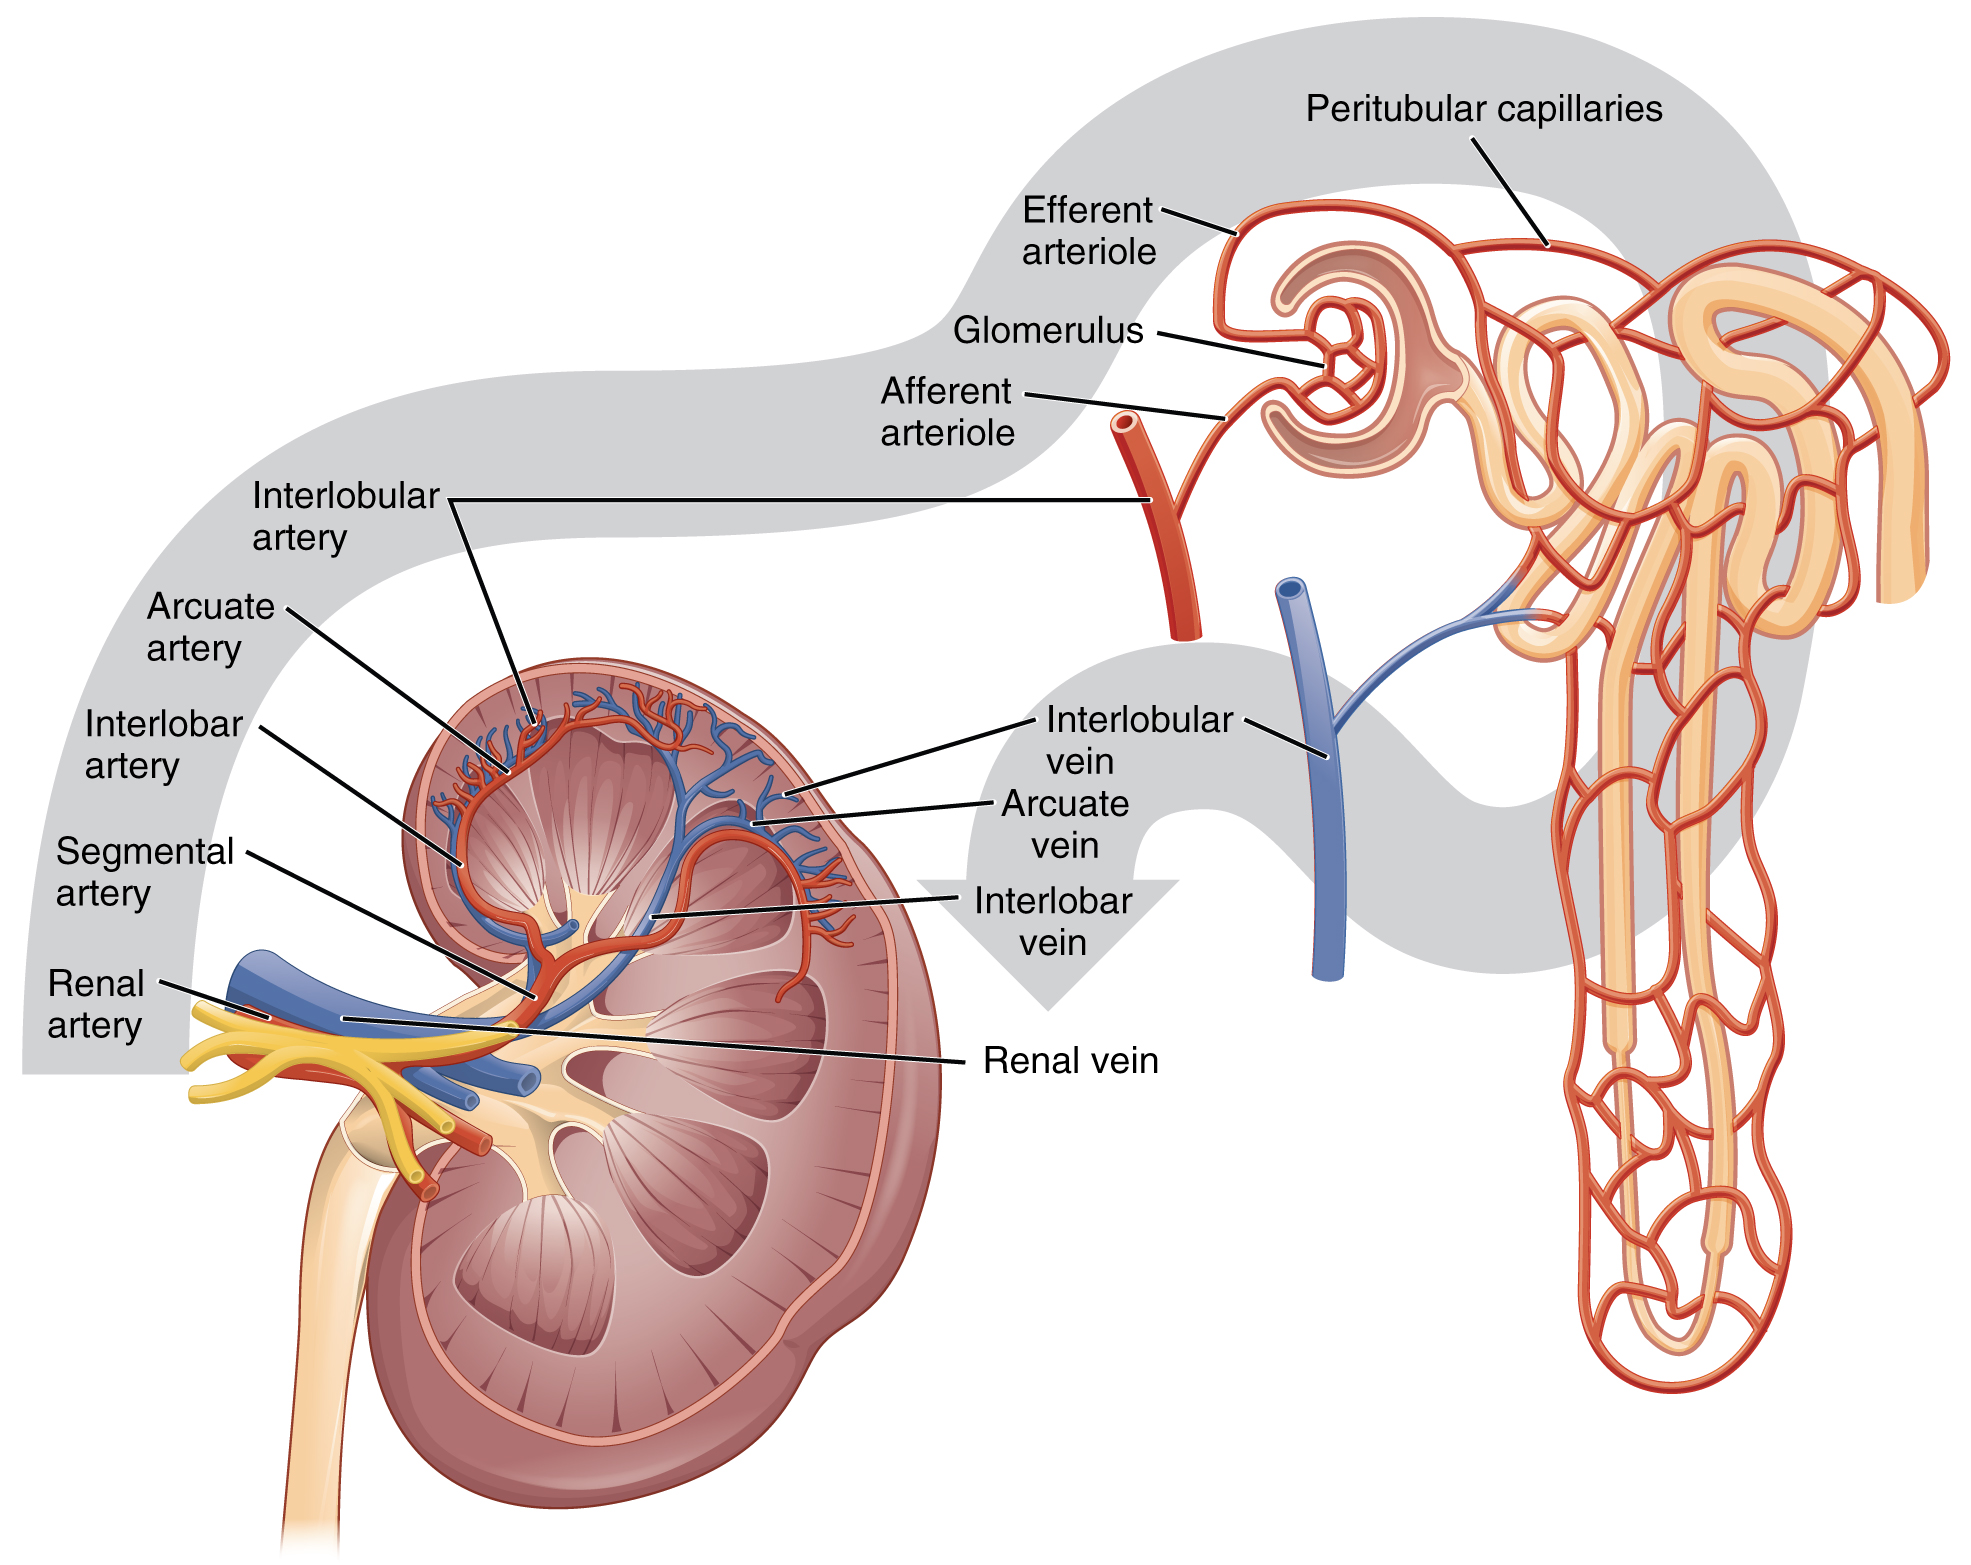 253 Gross Anatomy Of The Kidney Anatomy And Physiology